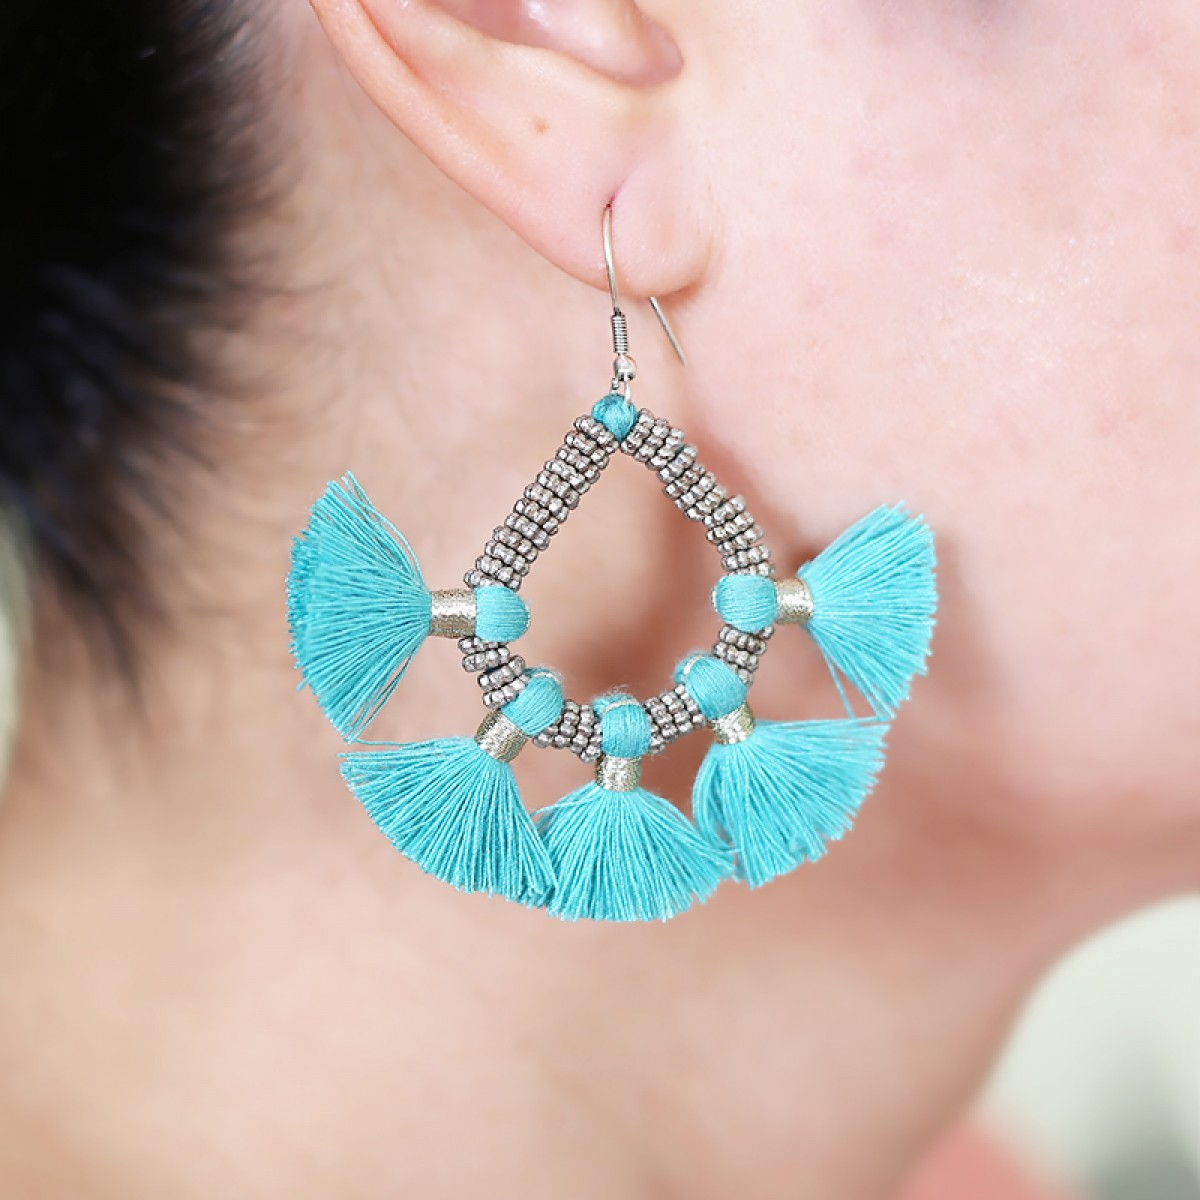 Bohemian Fashion Tassel Earrings - Turquoise